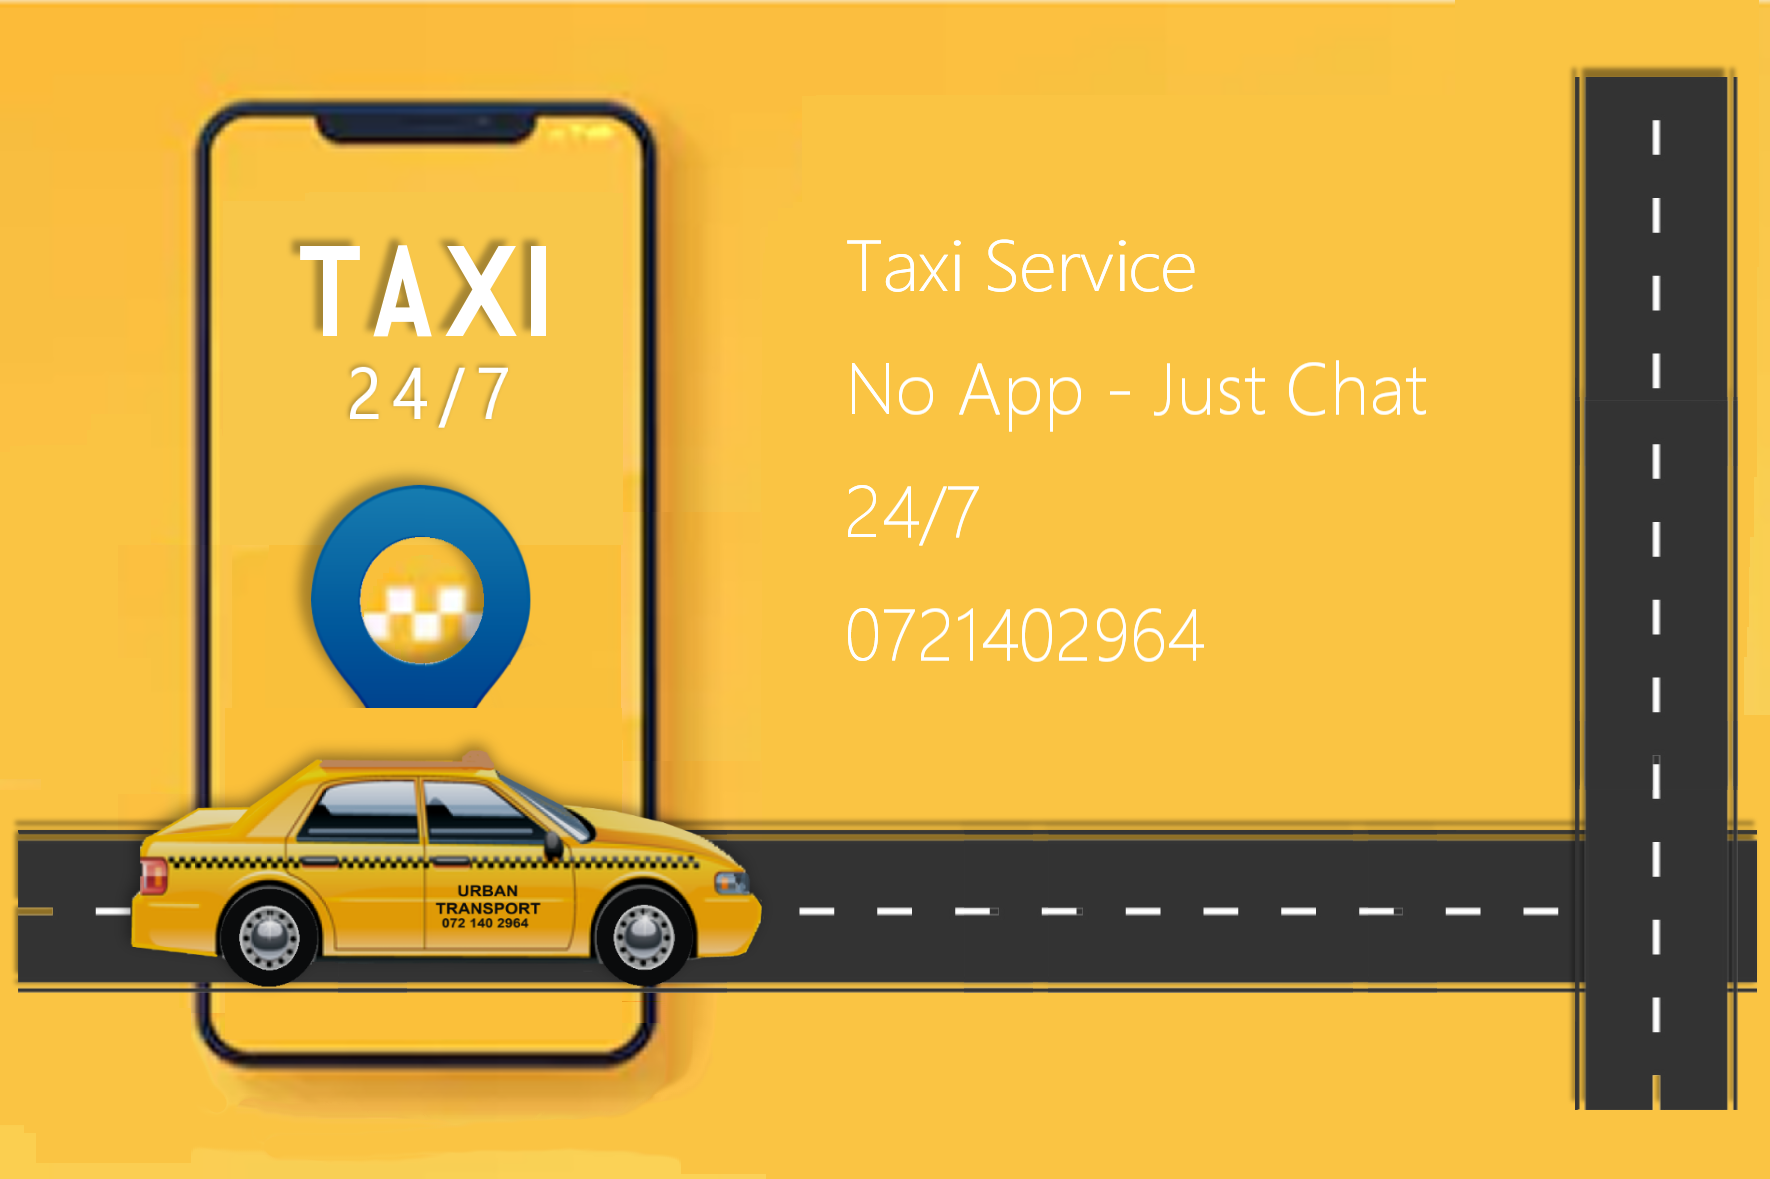 AFFORDABLE, RELIABLE & SAFE TRANSPORT IN CAPE TOWN & SURROUNDING AREAS